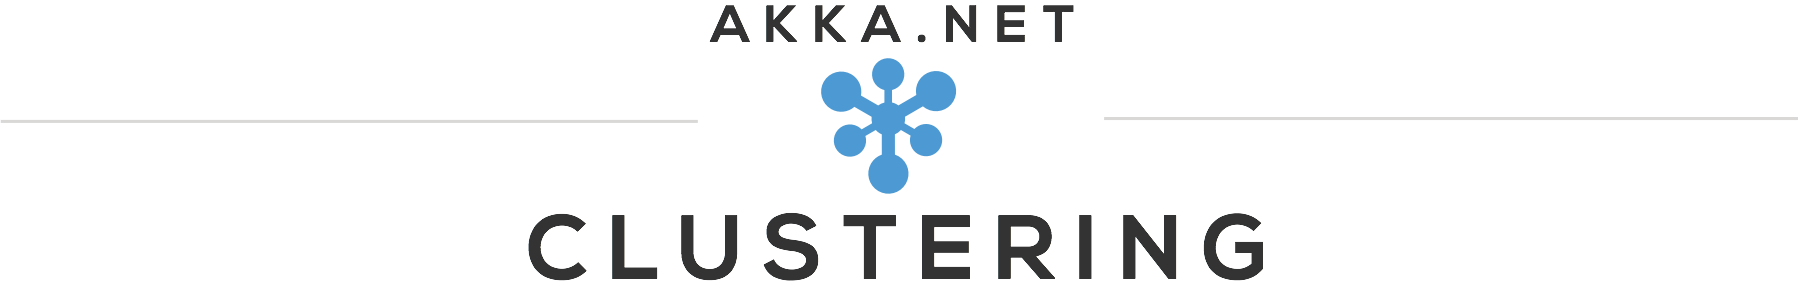 Introduction to Akka.NET and Akka.Cluster